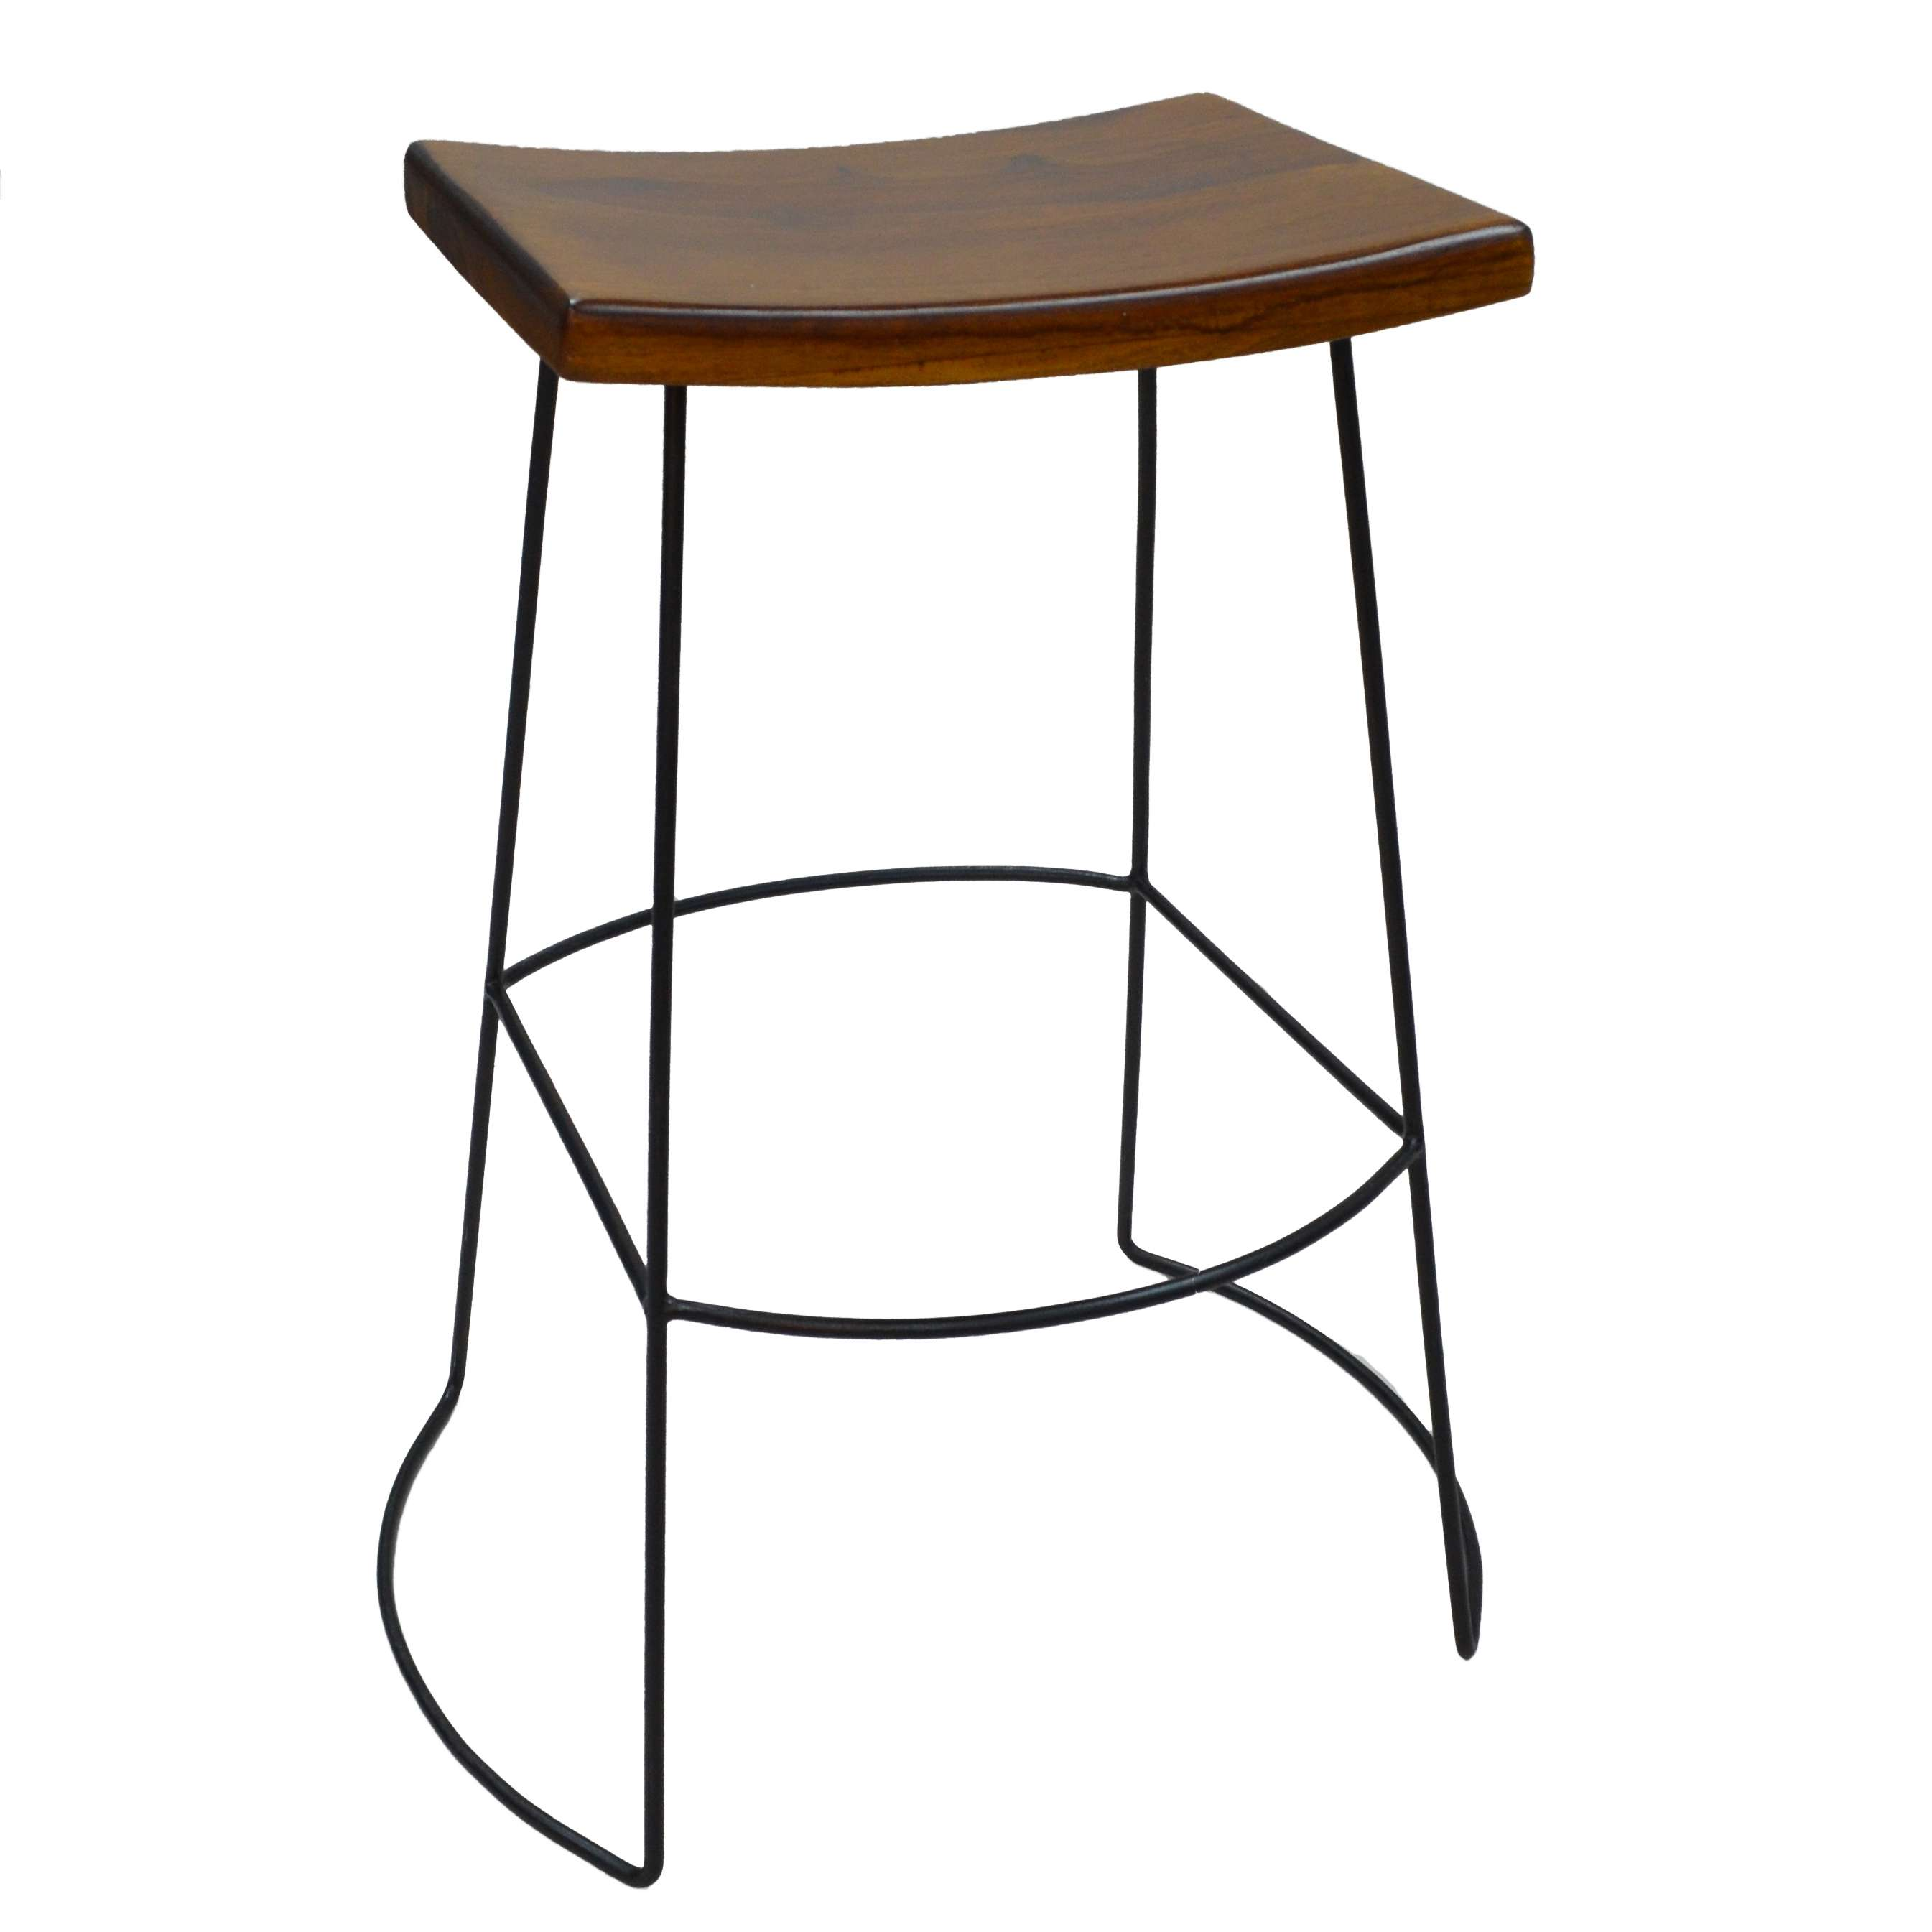 Carolina Chair & Table Reece Brown Saddle Seat Bar Stool with Metal ...